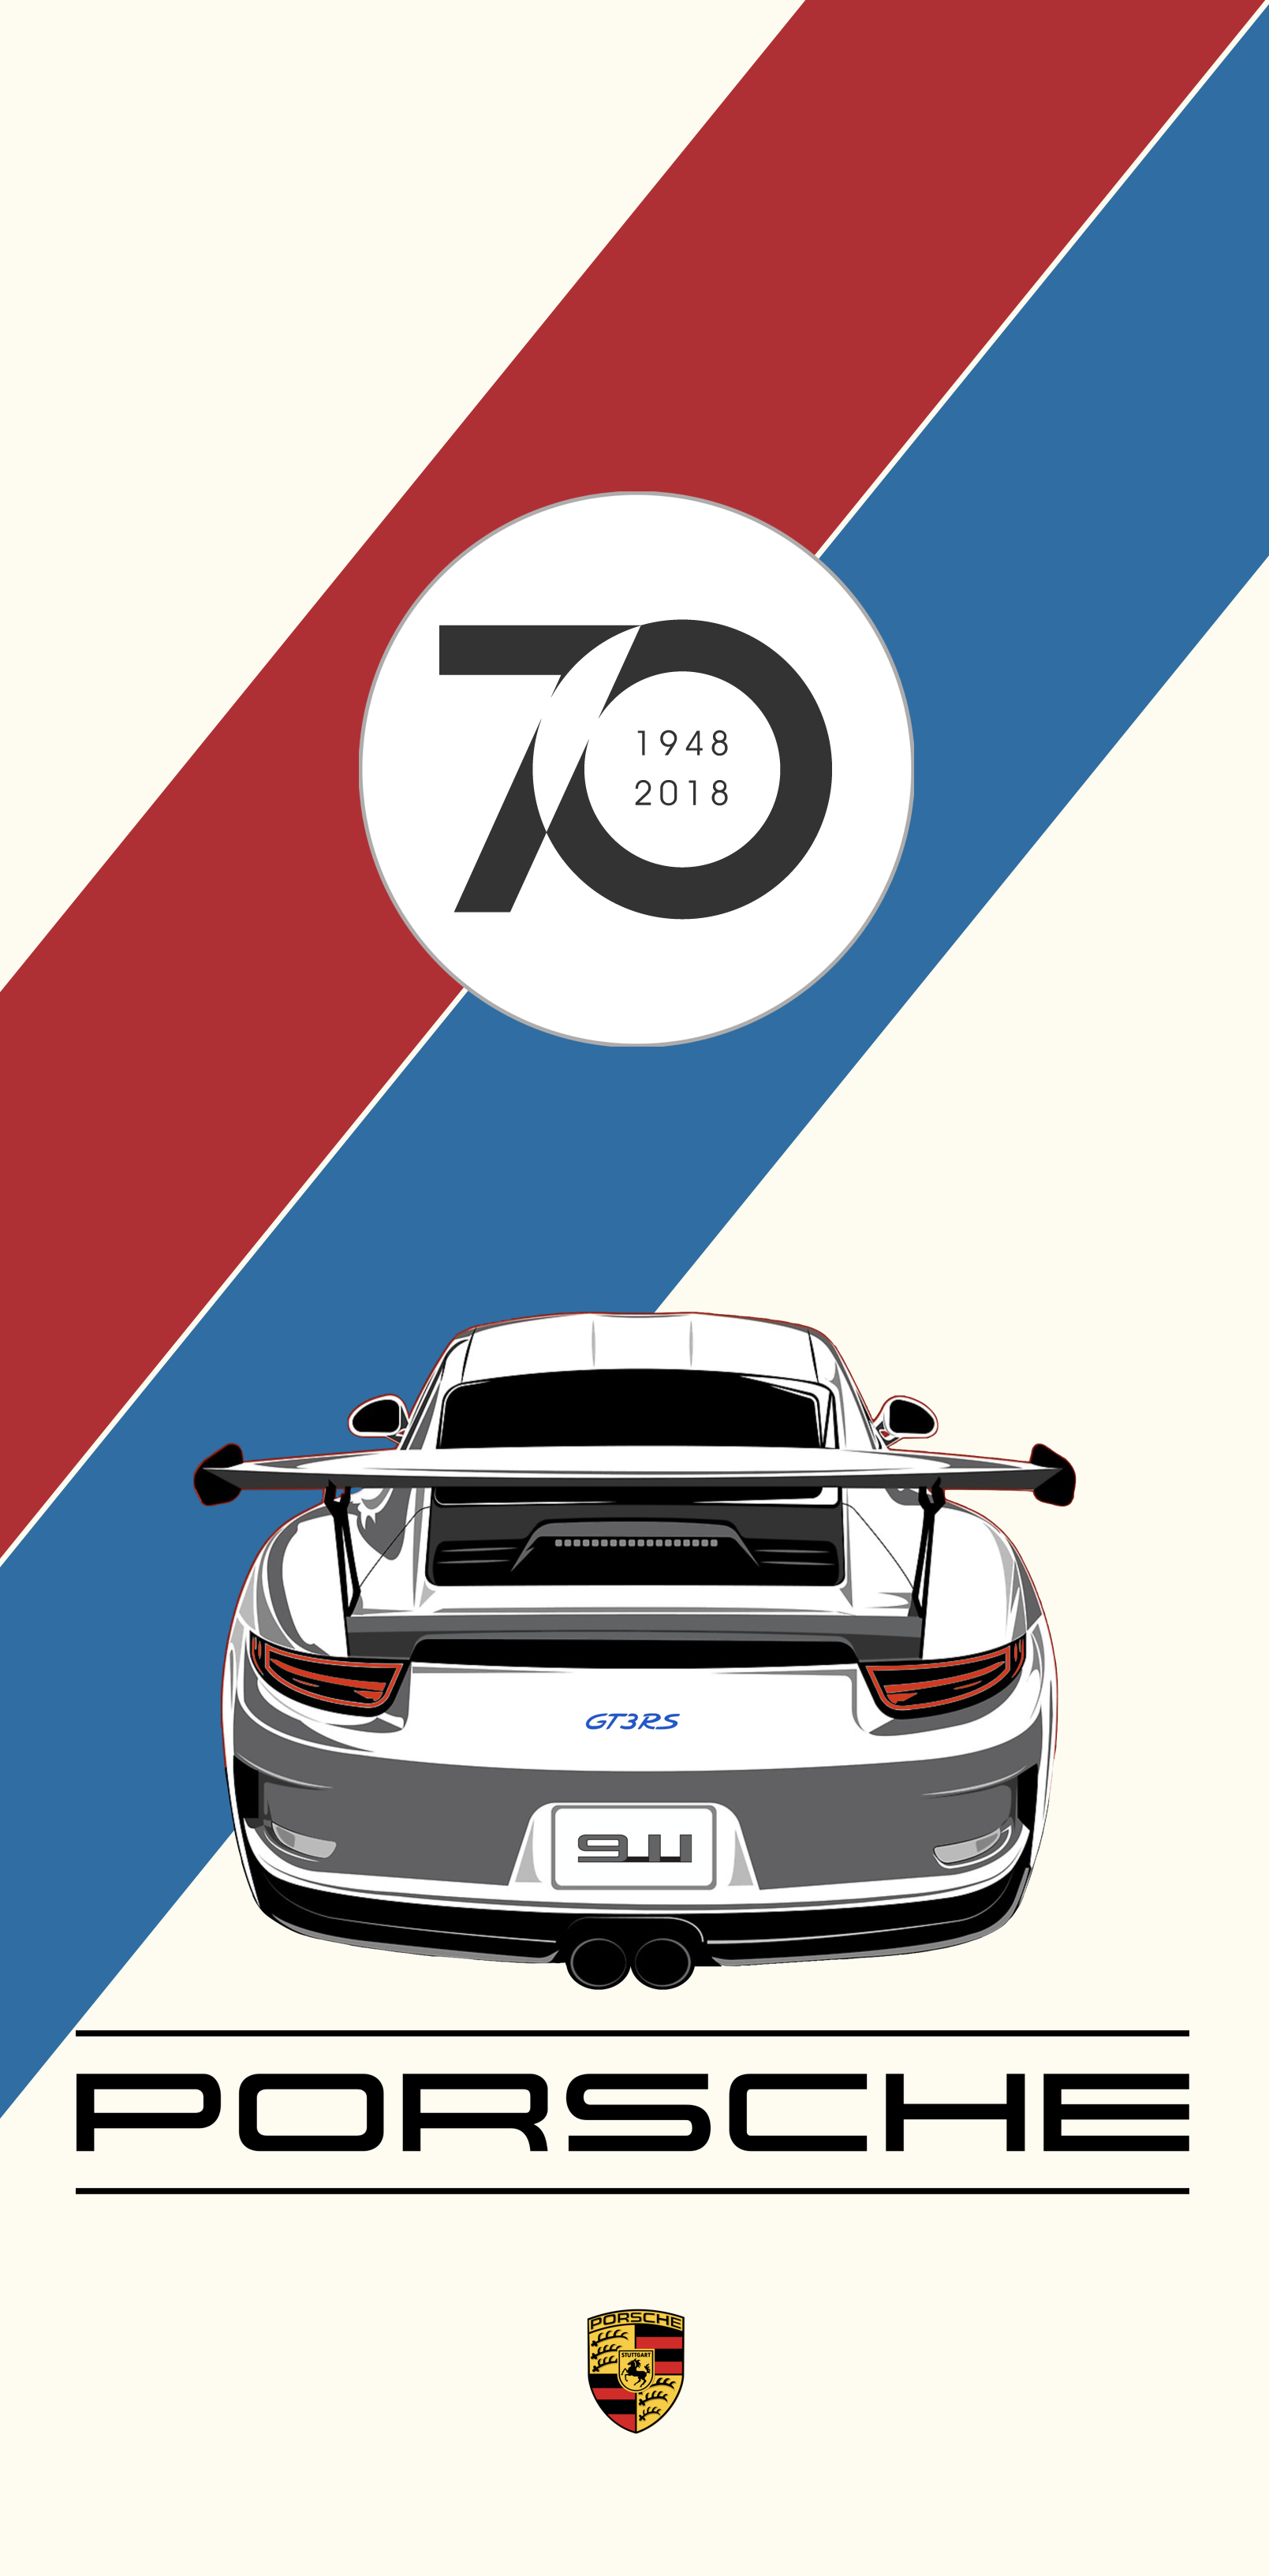 70 Years Of Porsche Gt3 Rs Cool Porsche Wallpaper 2016 991 1 Gt3 Rs You Are In The Right Place About Bike S Riding Here In 2020 Porsche Porsche Gt3 Porsche 991